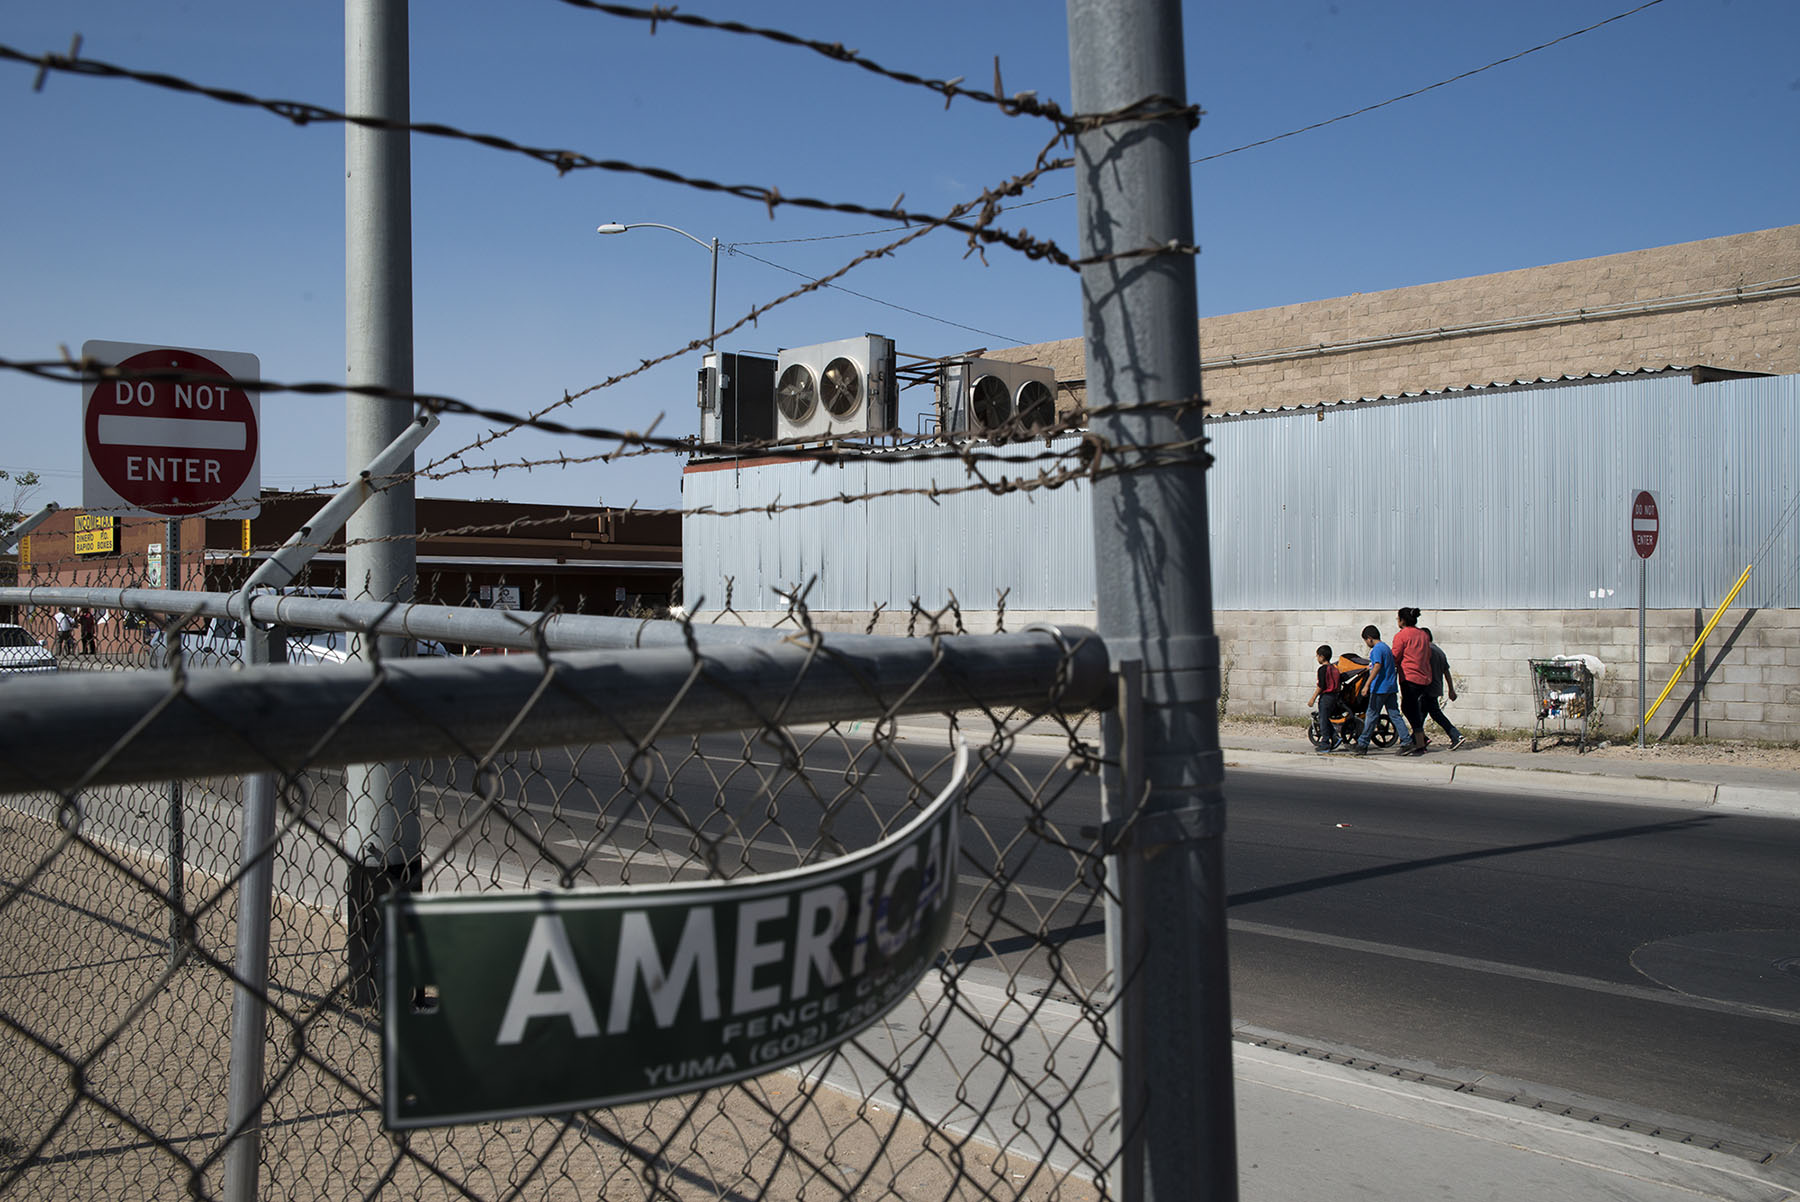 A total of 15.8 million people passed through the border crossing in San Luis, Arizona, in 2015. (Roman Knertser/News21)